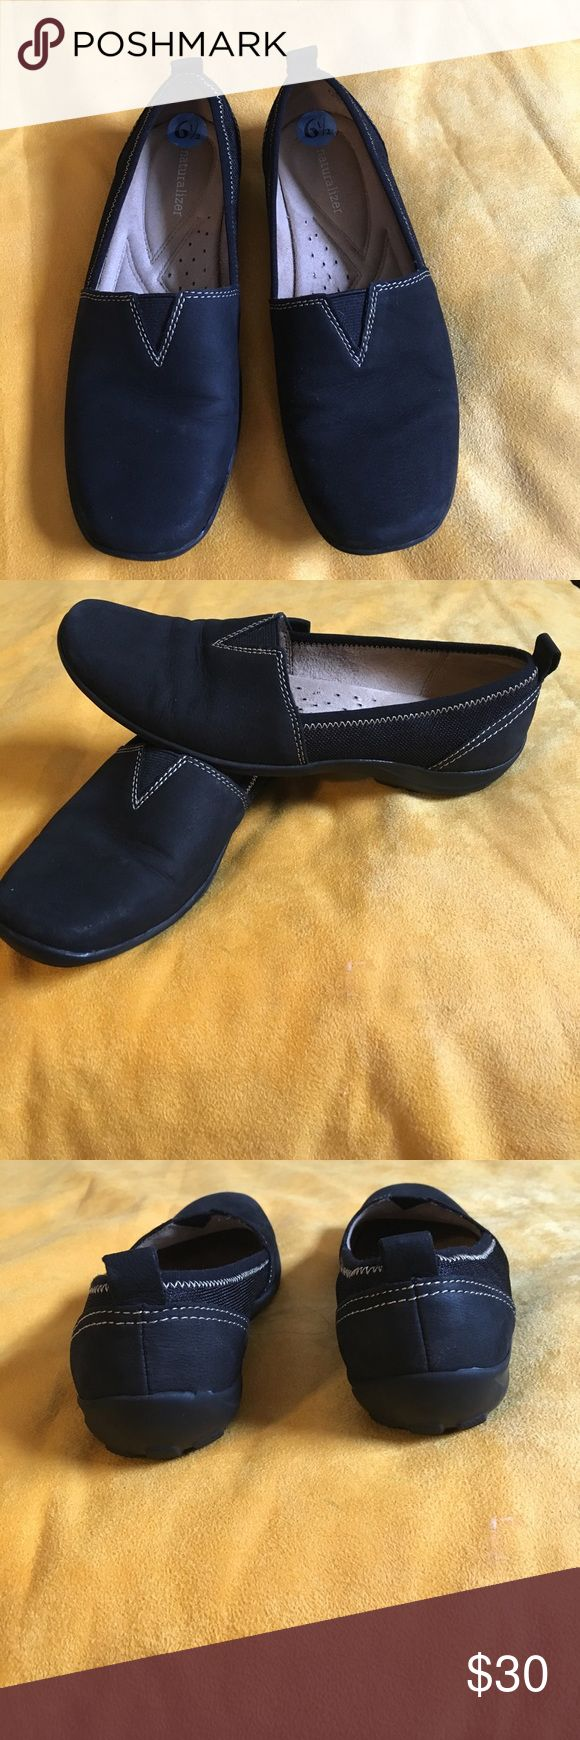 Naturalizer shoe Leather upper Naturalizer comfy shoes great for work size 6 1/2 never worn. Bought them for my daughter but they're too small for her. Naturalizer Shoes Flats & Loafers